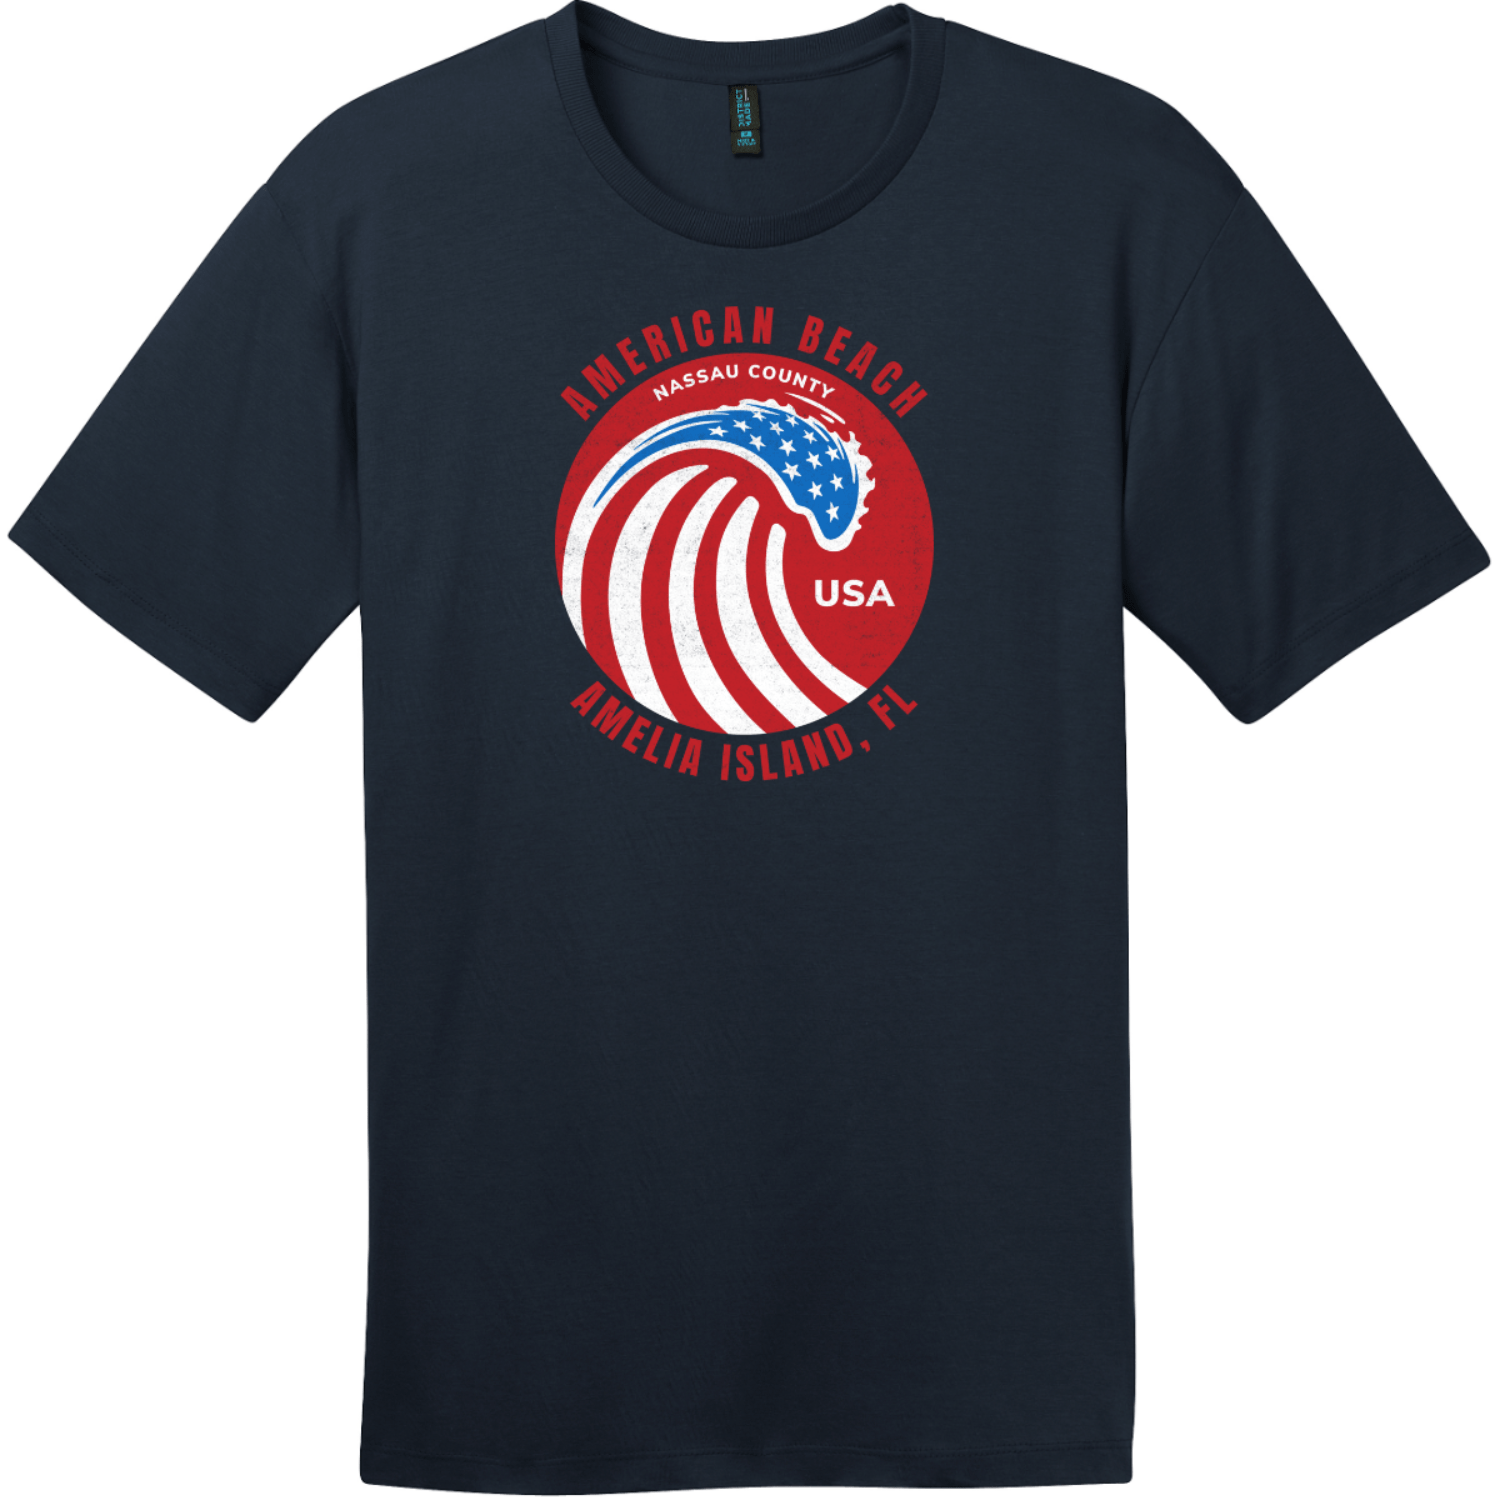 American Beach Amelia Island Vintage T-Shirt New Navy District Perfect Weight Tee DT104